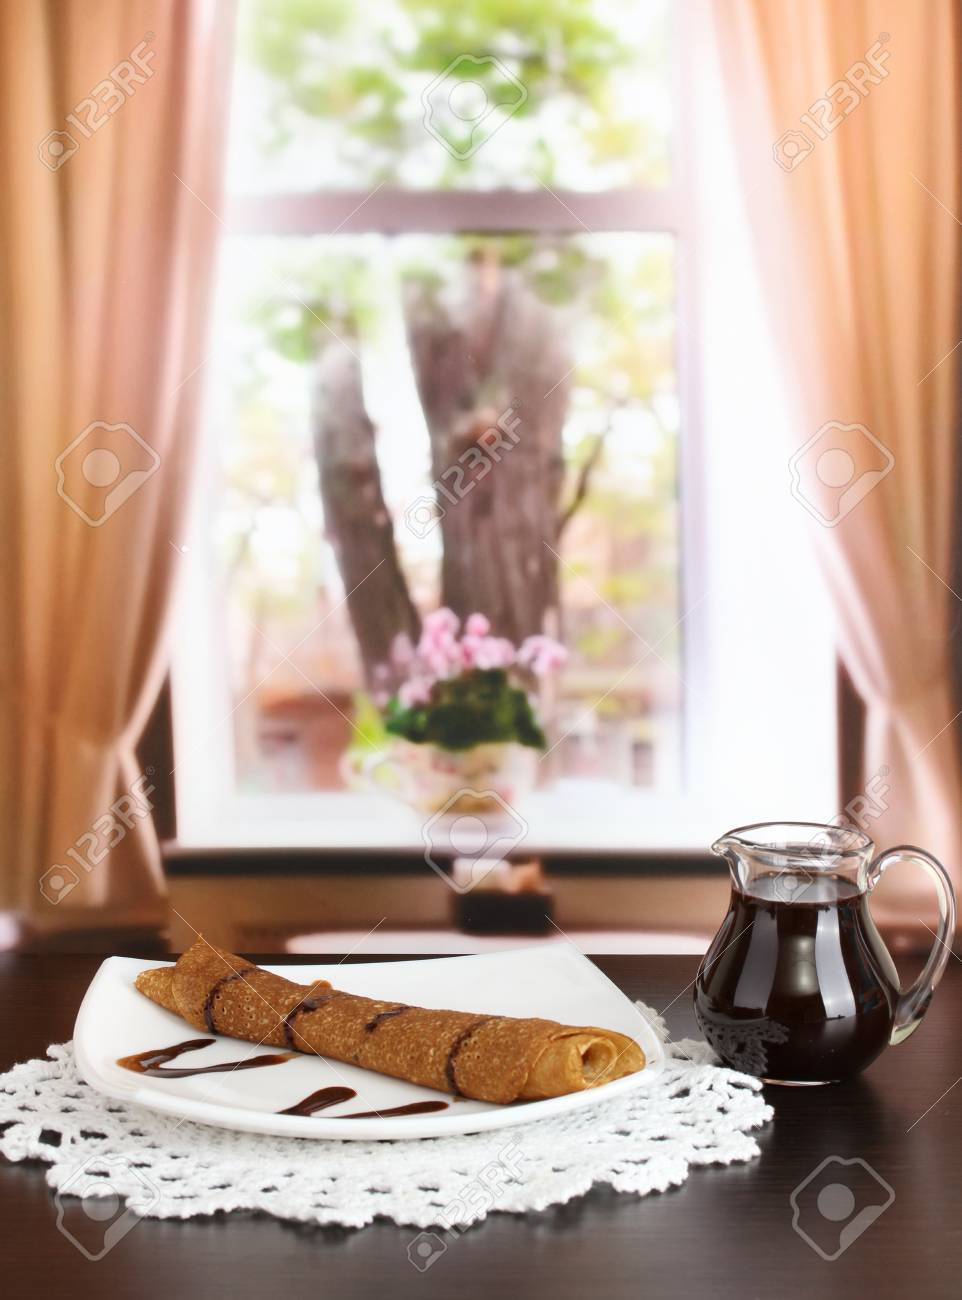 Sweet pancakes on plate with condensed milk on table in room Stock Photo - 17760622